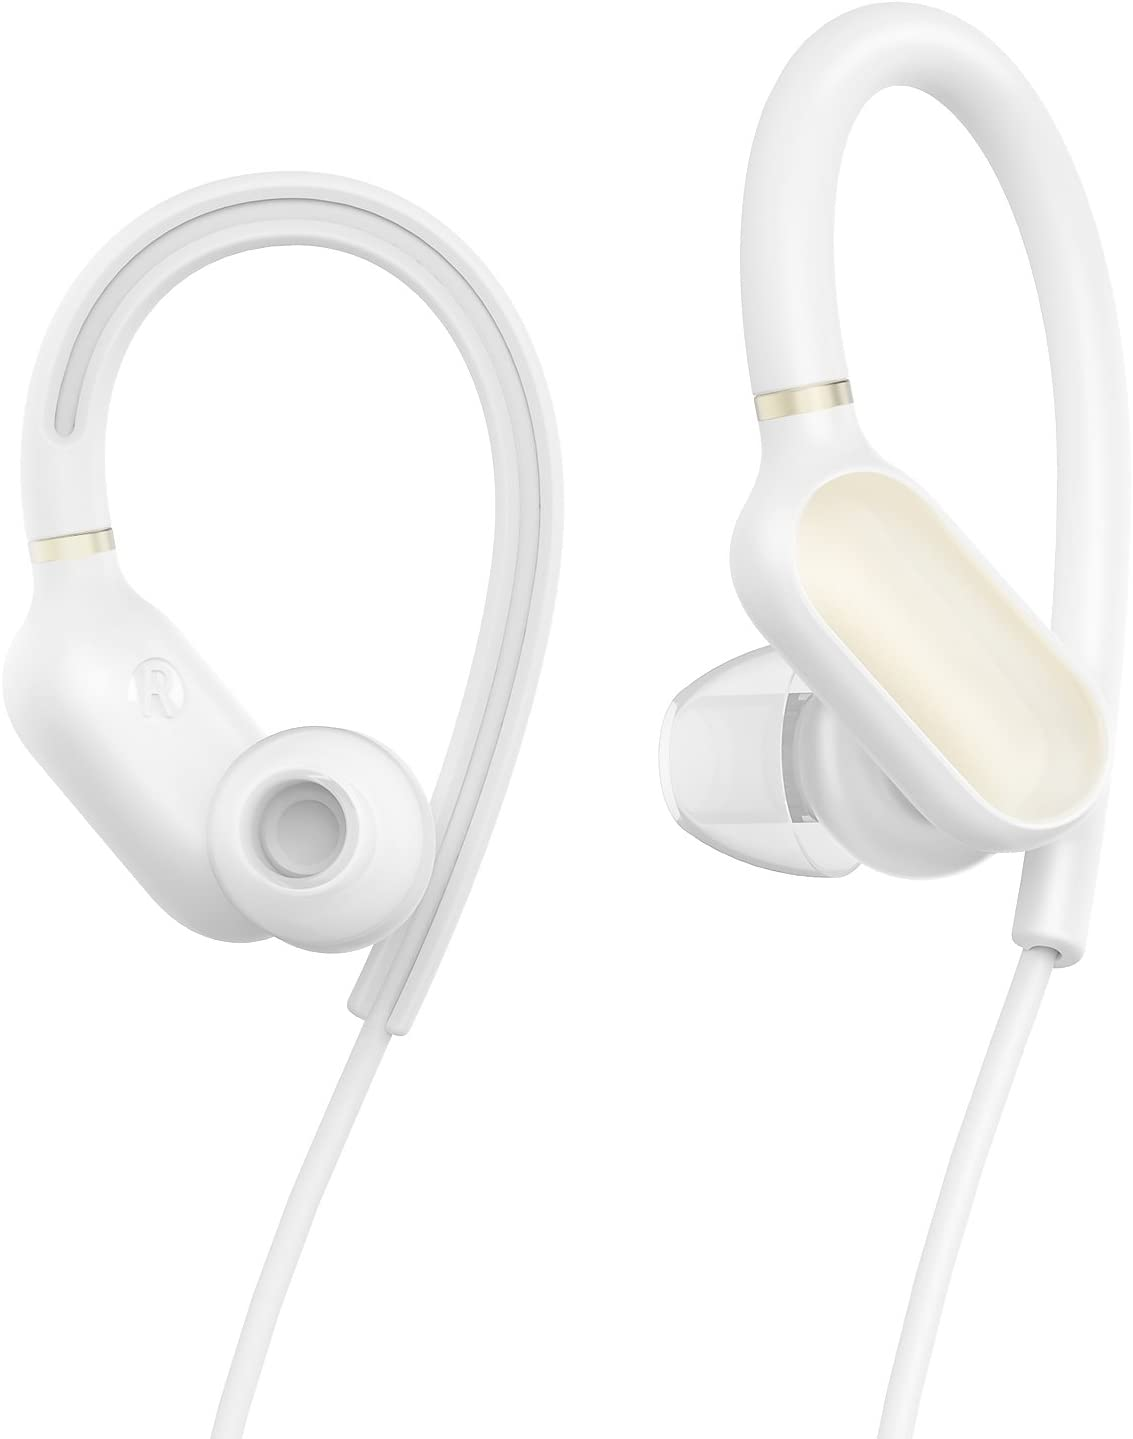 Xiaomi Auriculares de Deporte Bluetooth Color Blanco